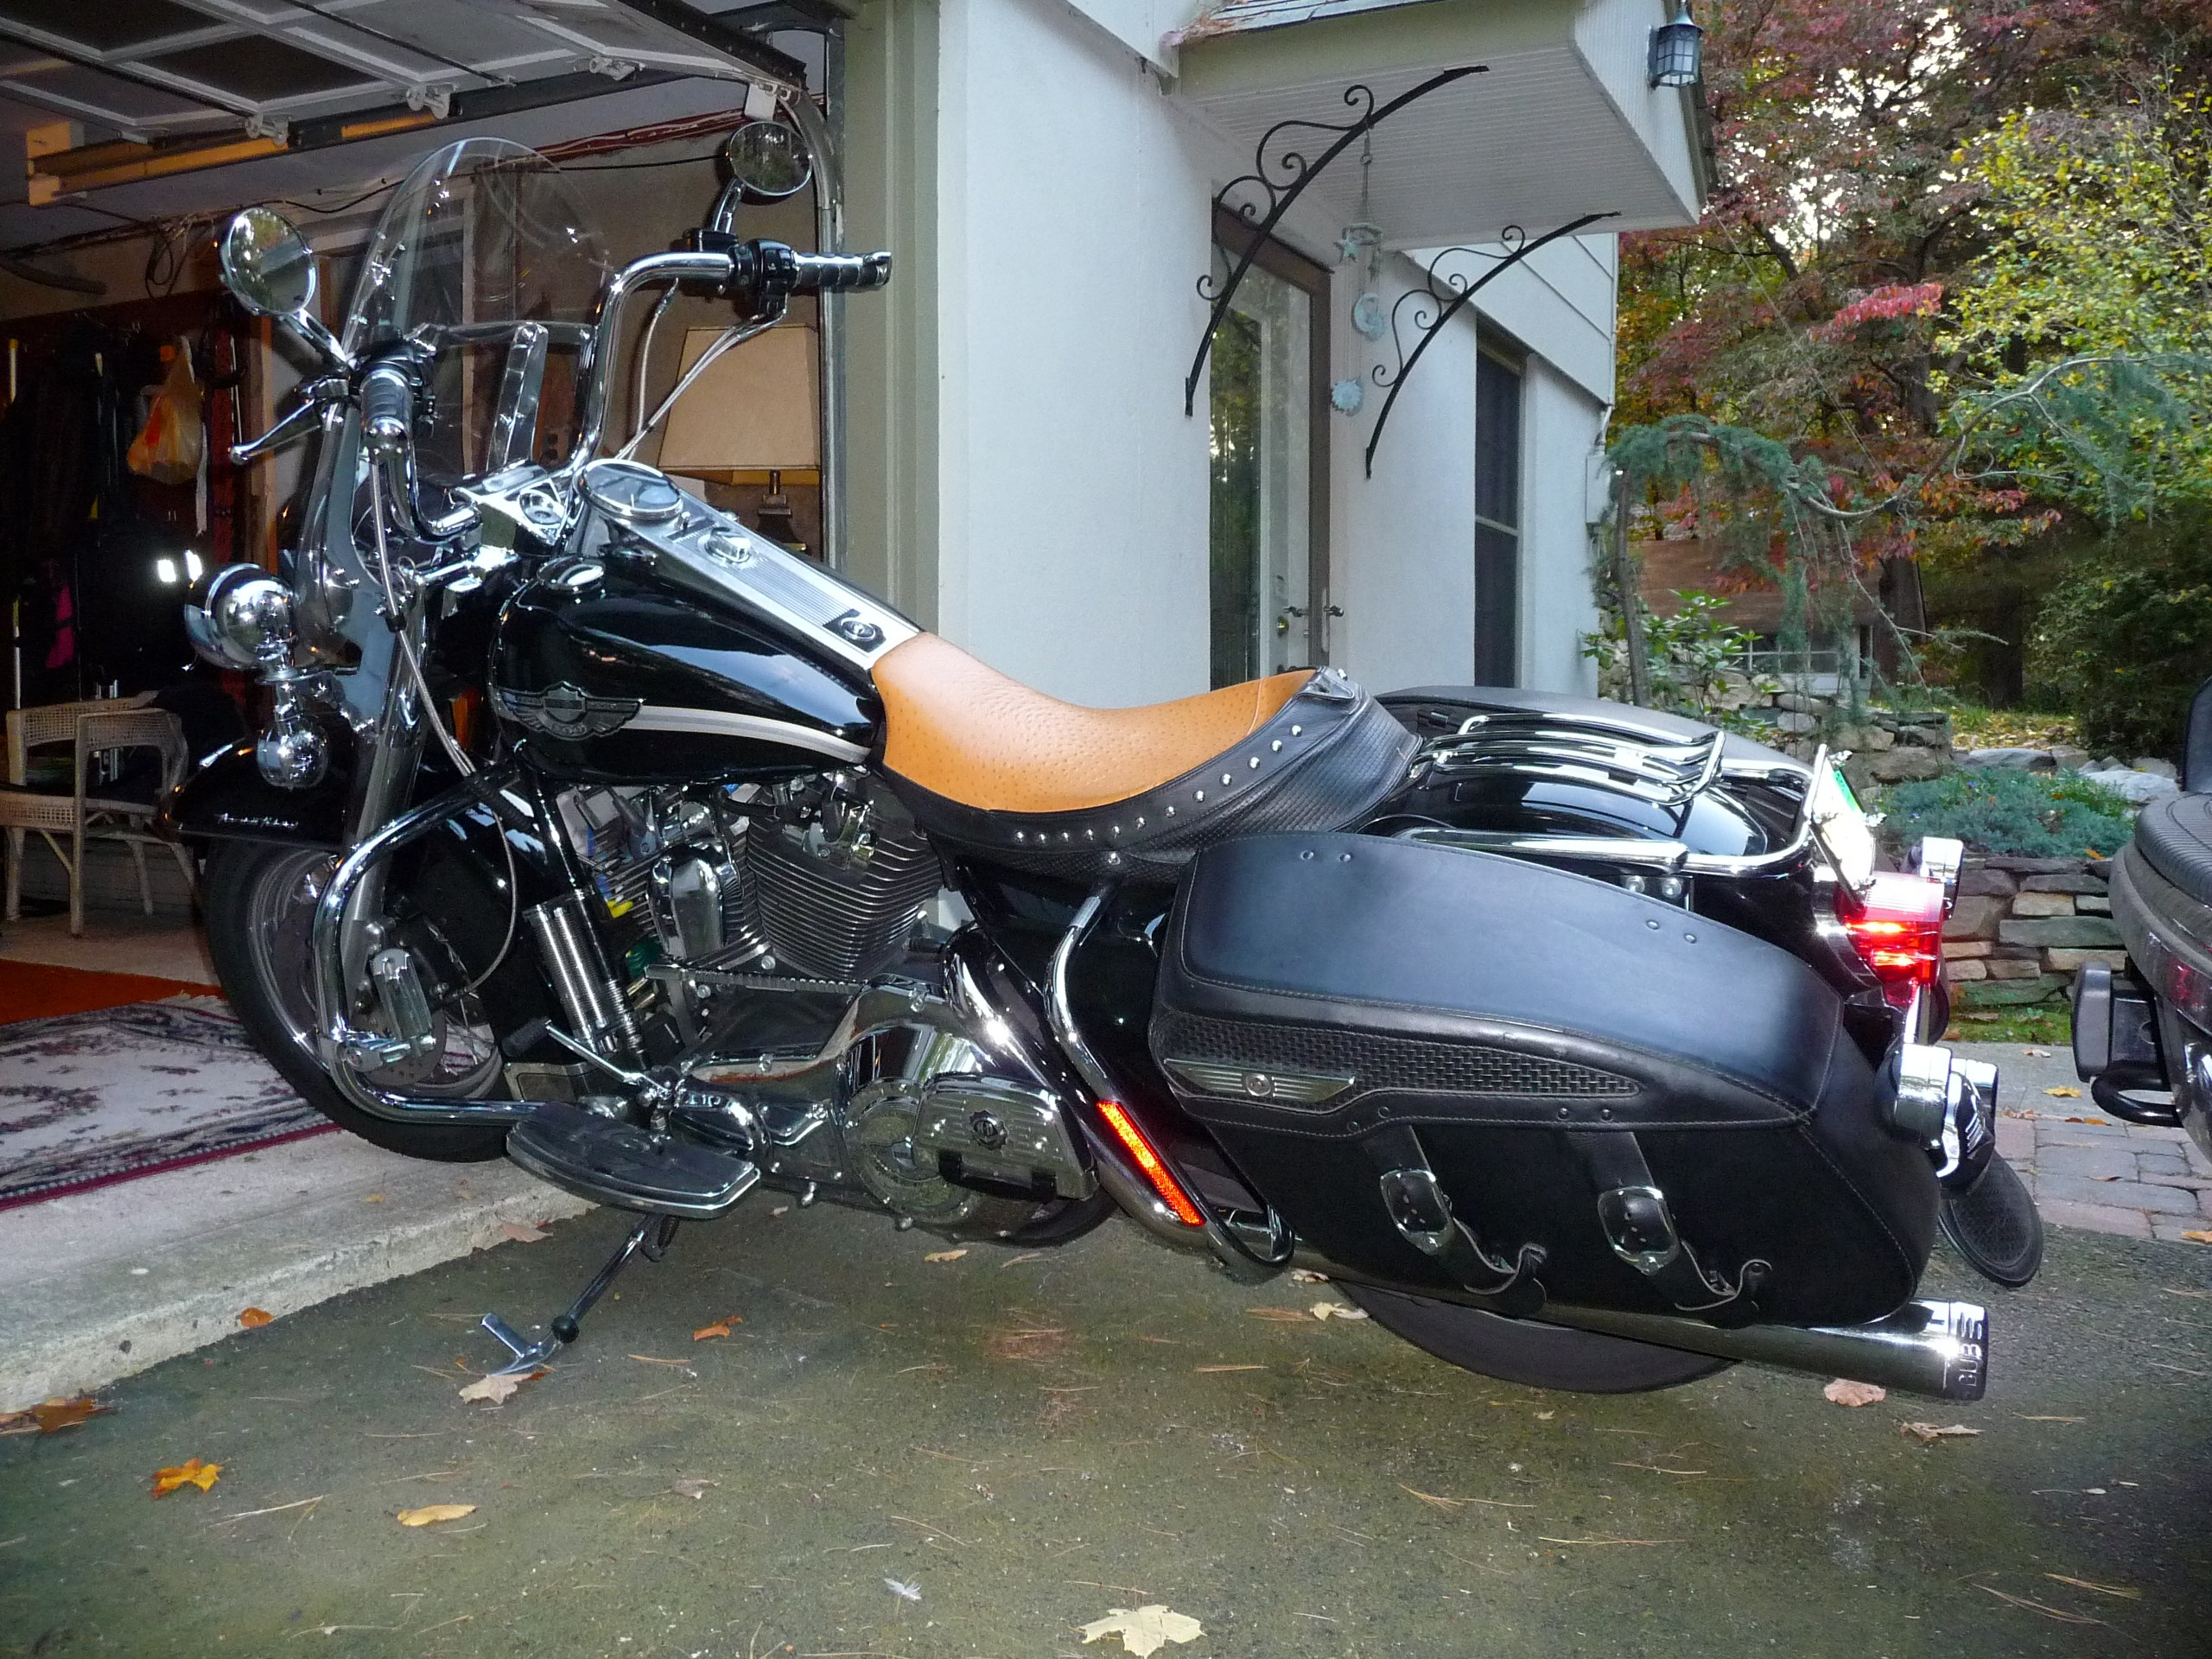 Used Motorcycles Nj >> 2003 Harley-Davidson® FLHRC/I-ANV Road King® Classic Anniversary (Black), Wanaque, New Jersey ...